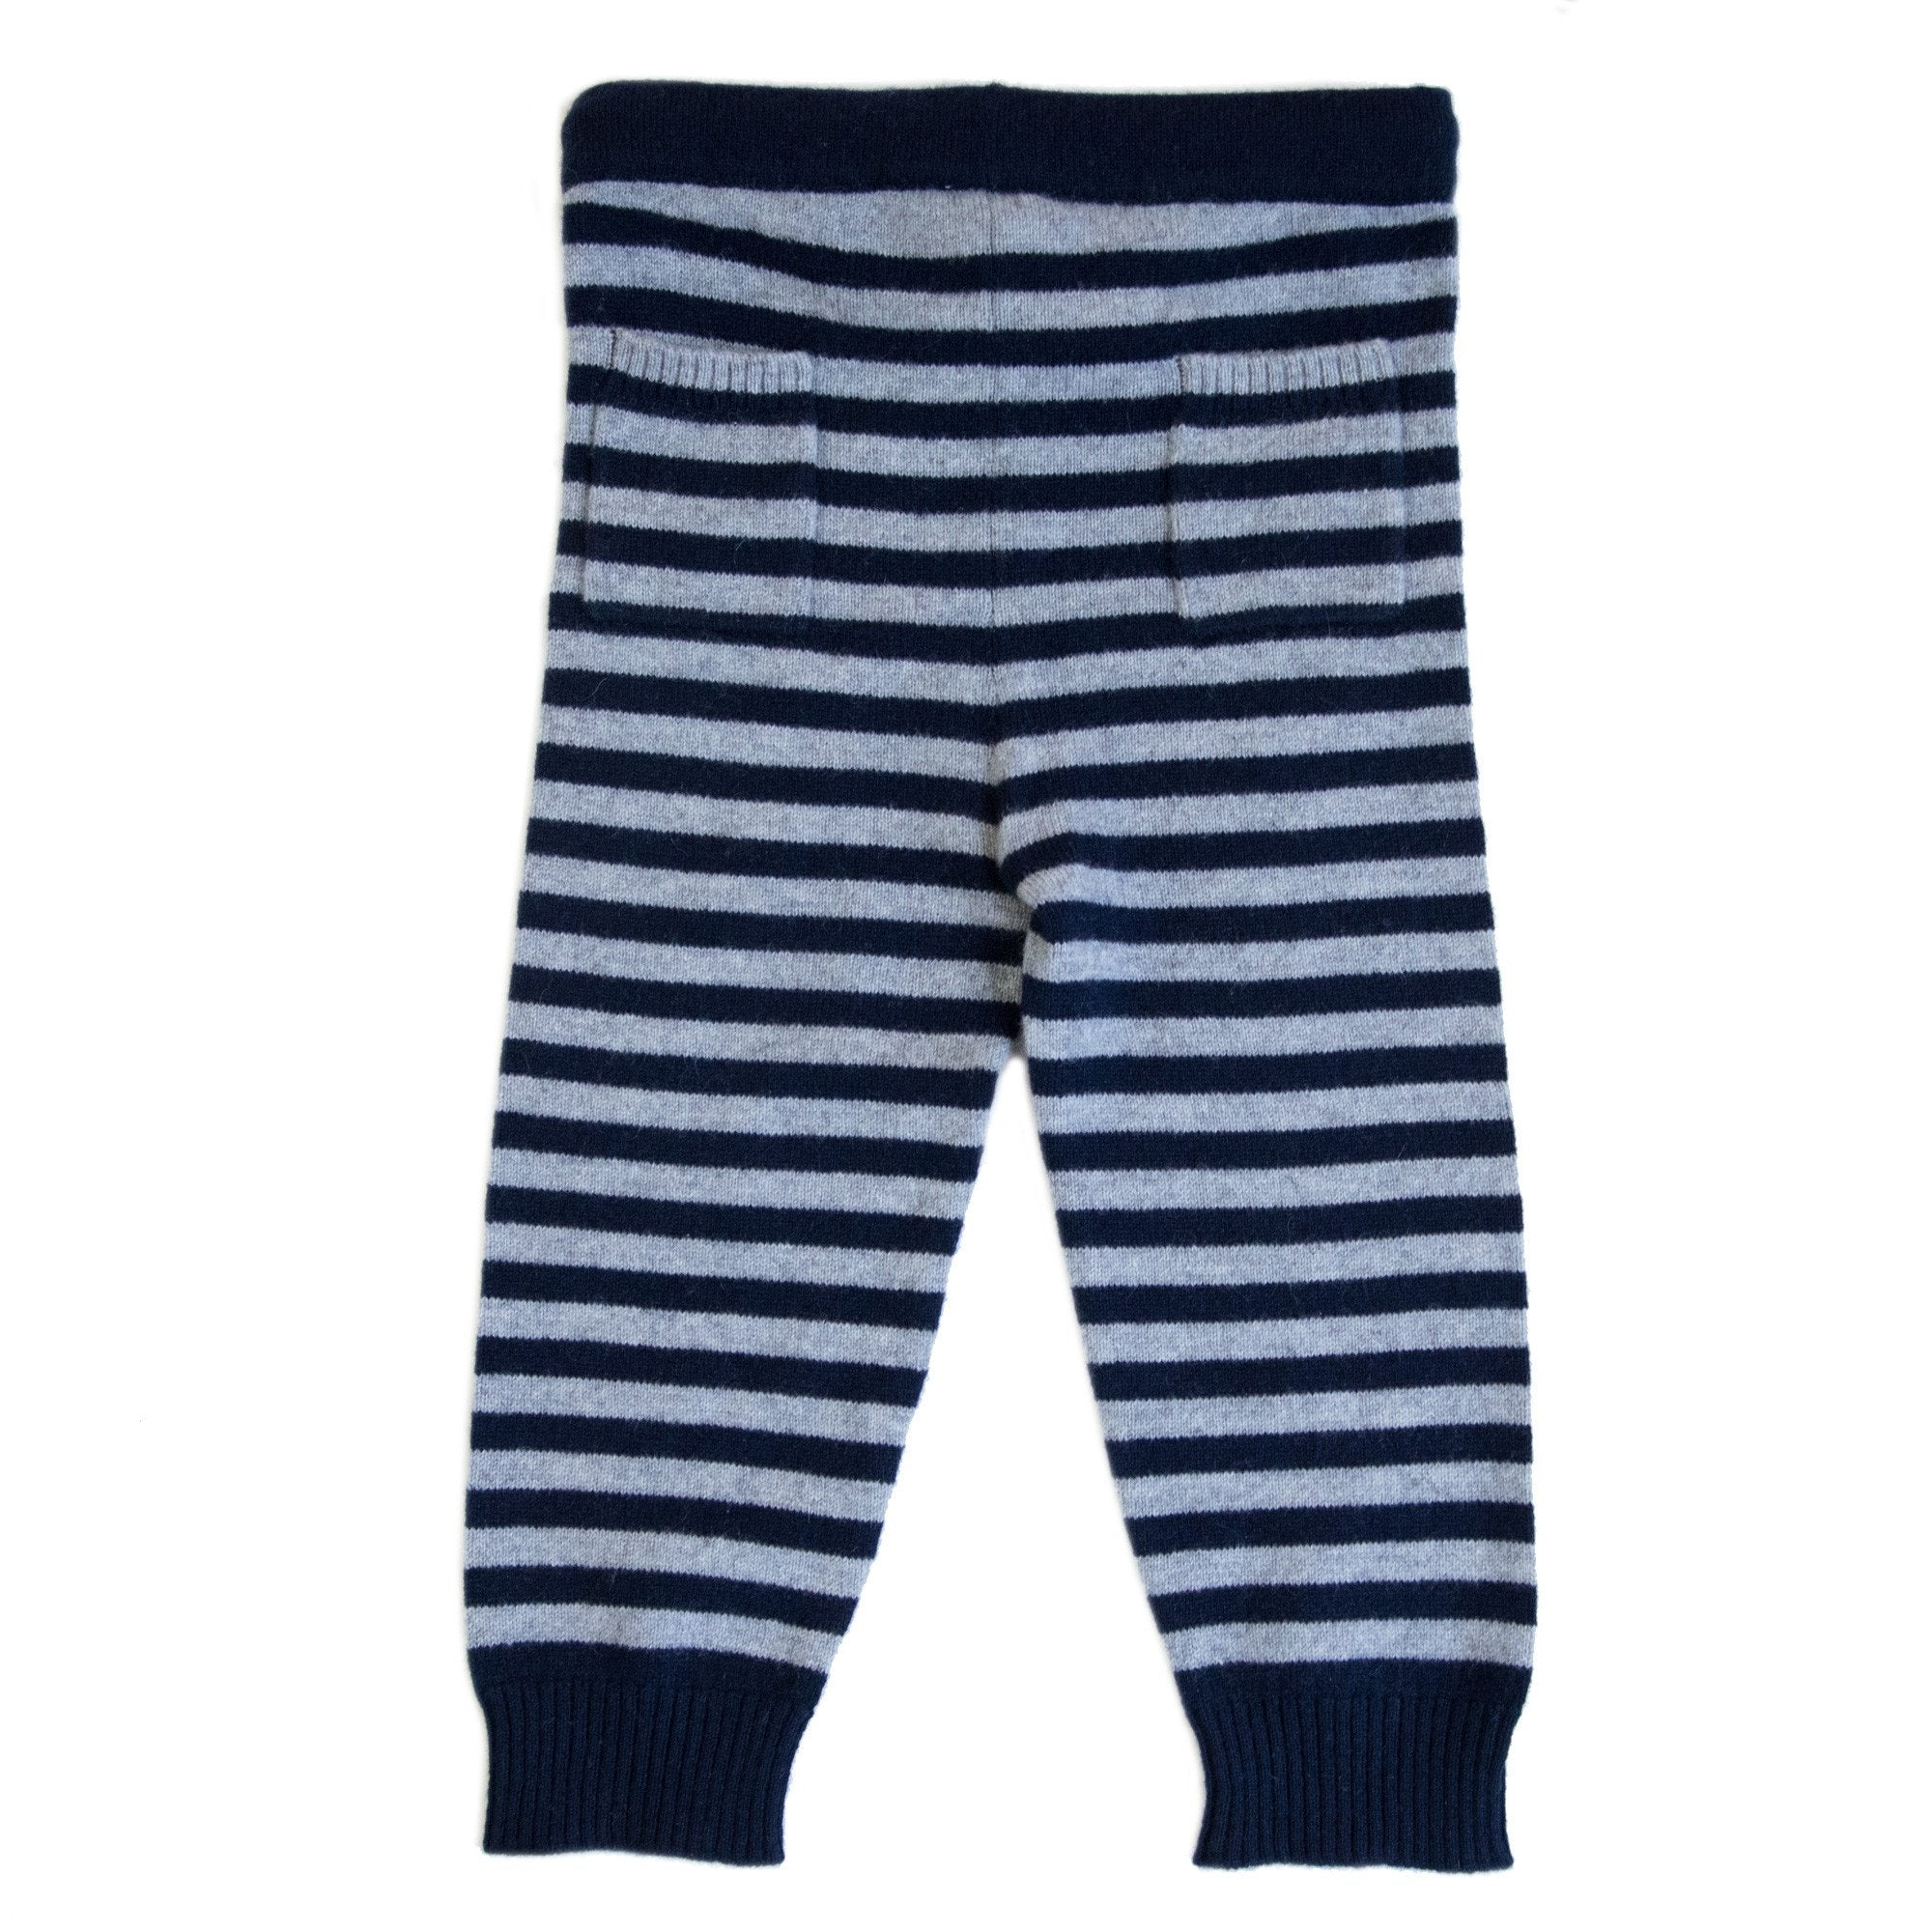 CASHMERE STRIPE PANTS IN NAVY AND GREY